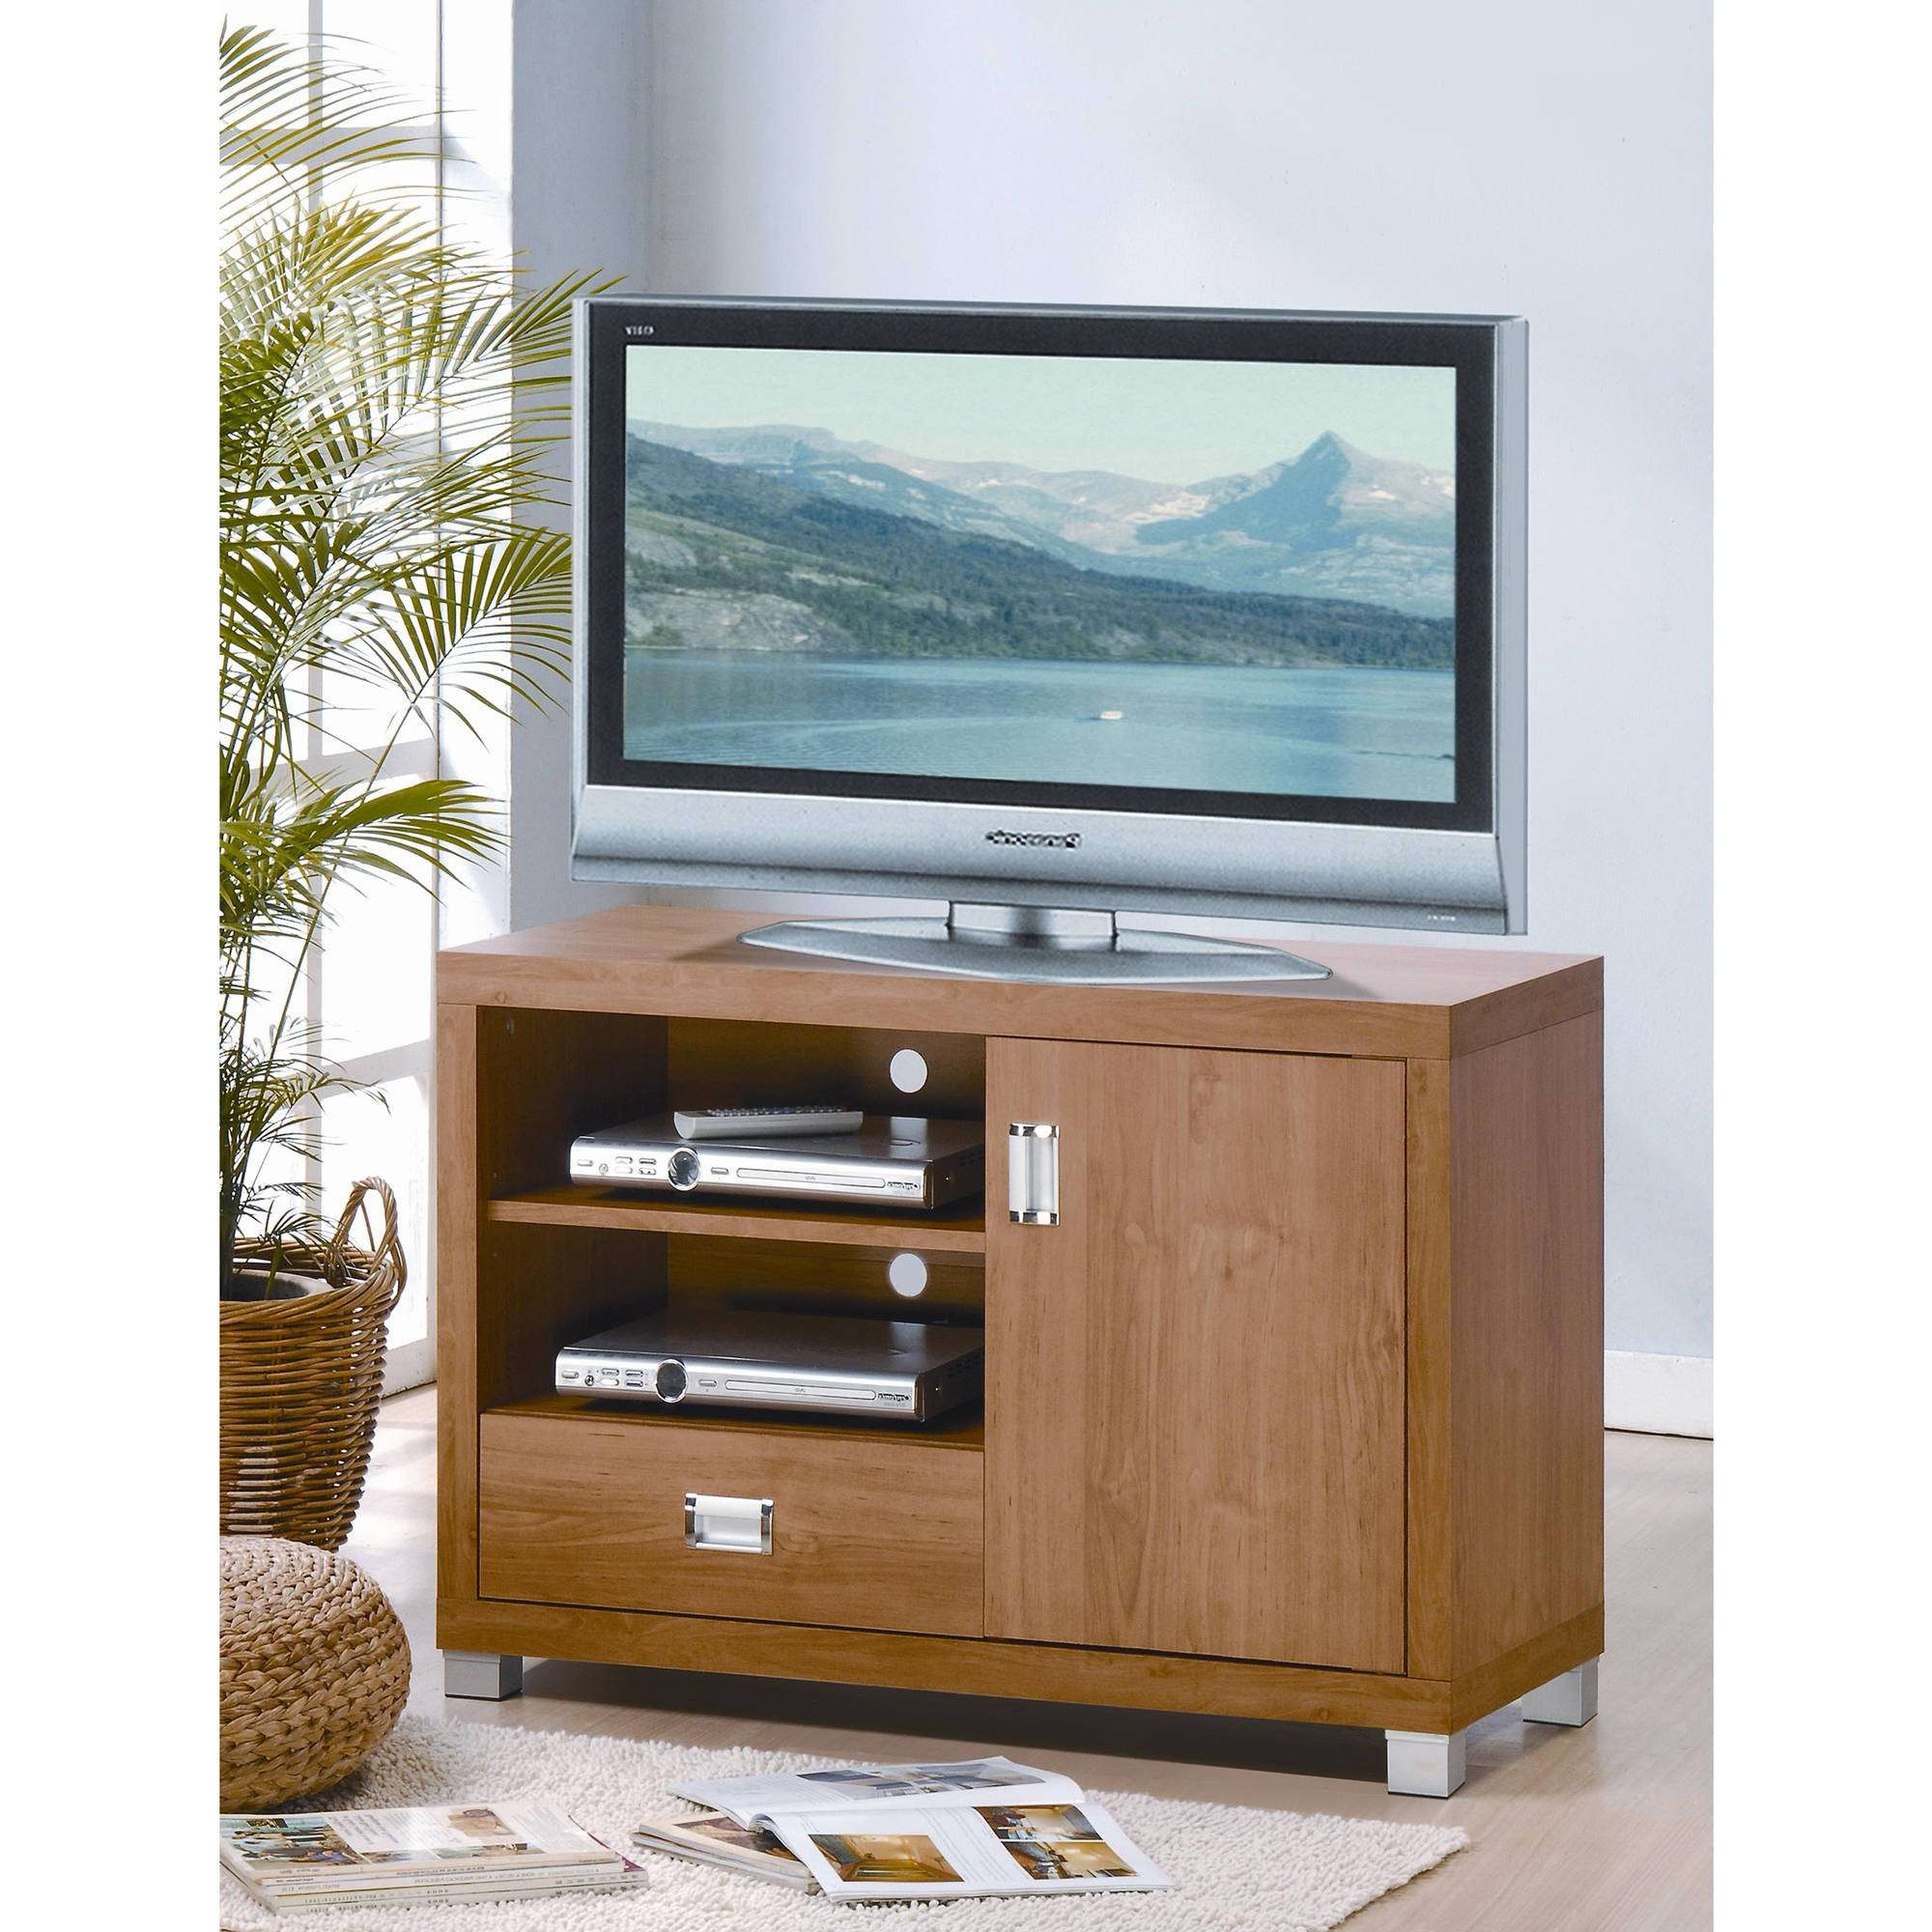 Techni Mobili Tv Cabinet, Maple – Walmart Within Maple Wood Tv Stands (View 7 of 15)